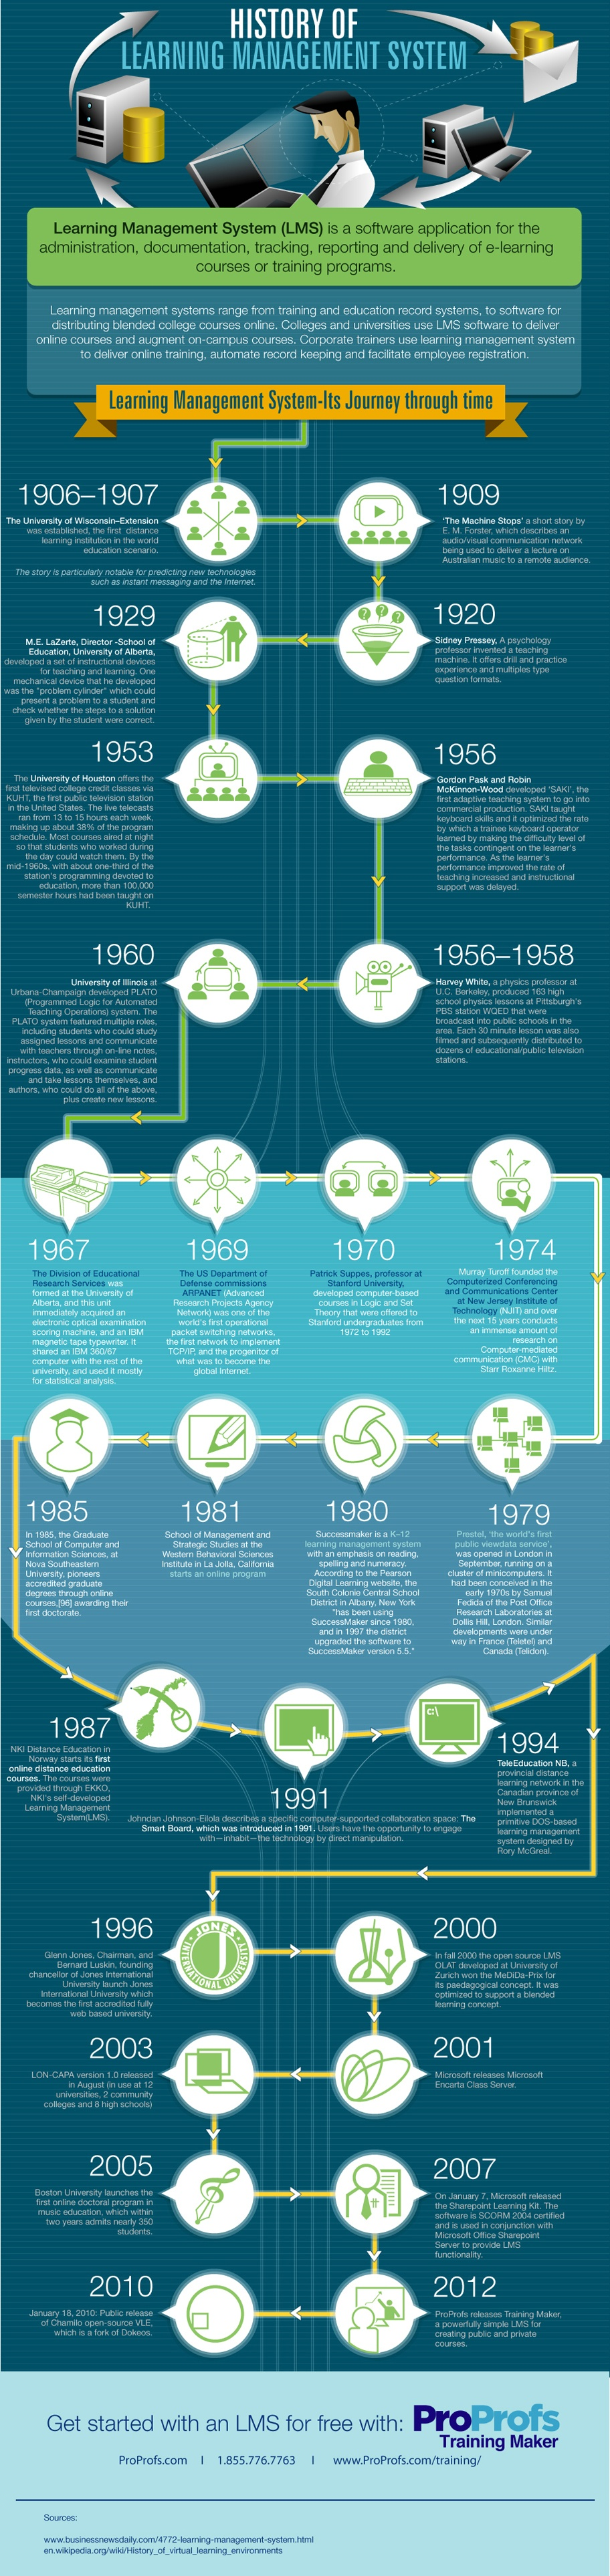 The History of LMSs Infographic